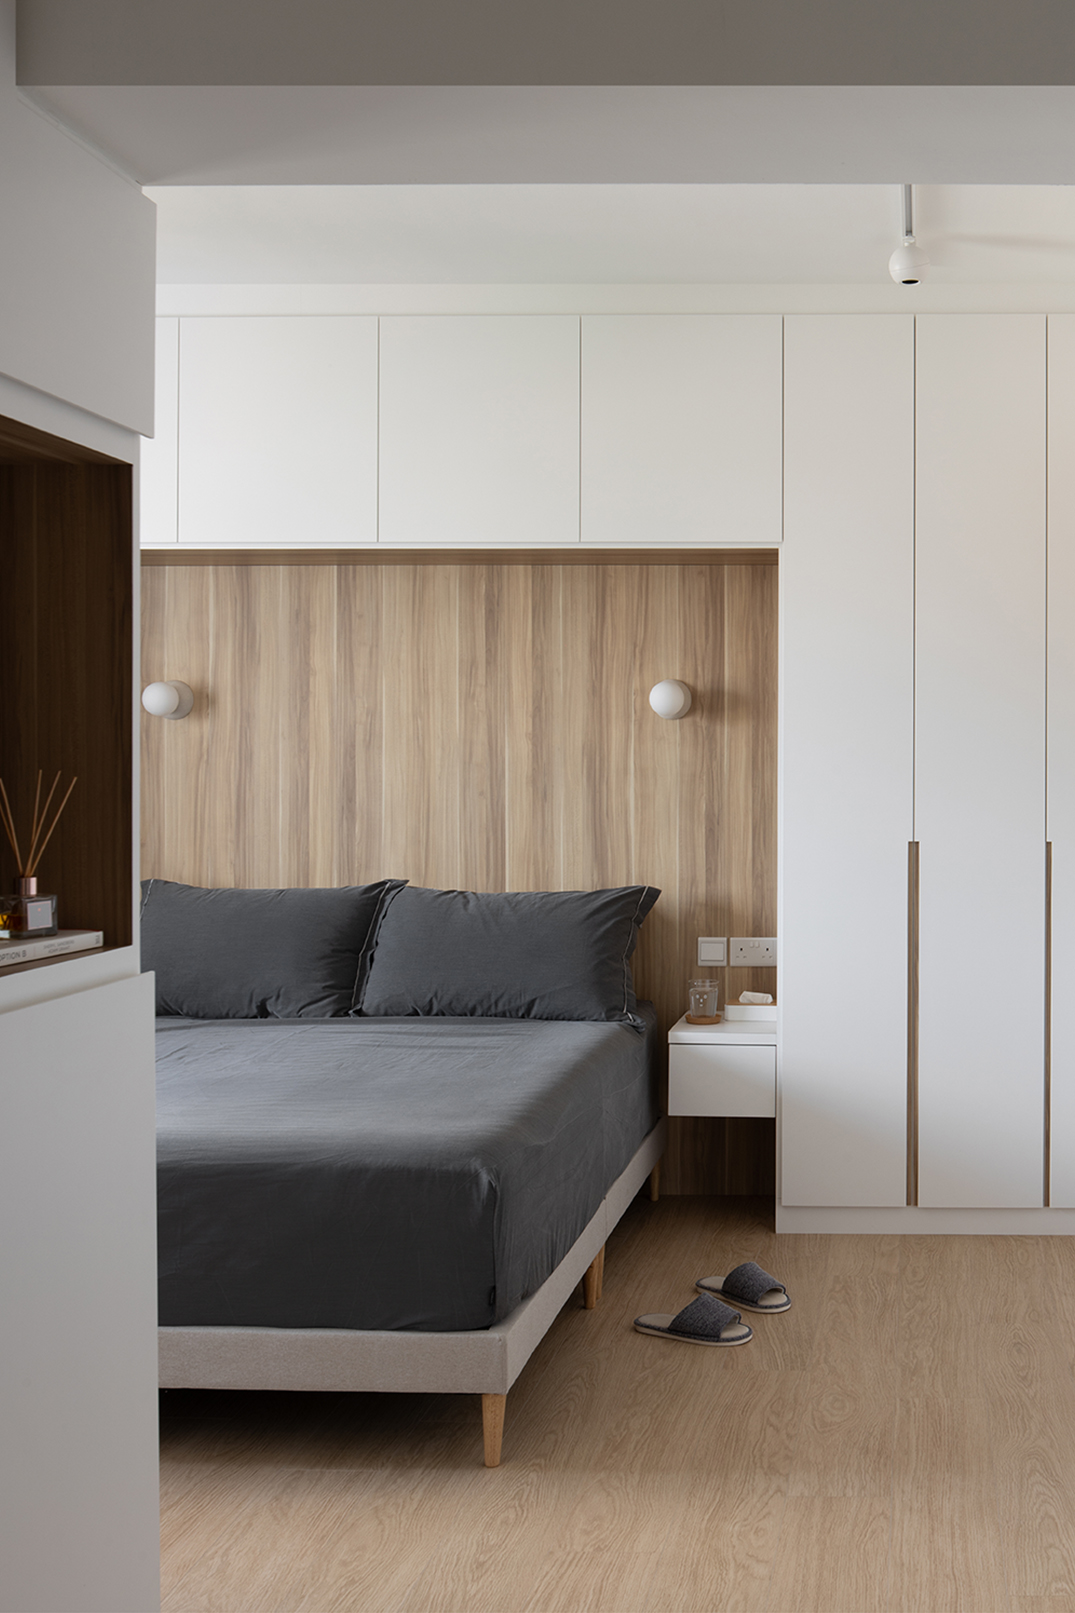 Ascend Design Interior Boon Tiong Rd bedroom